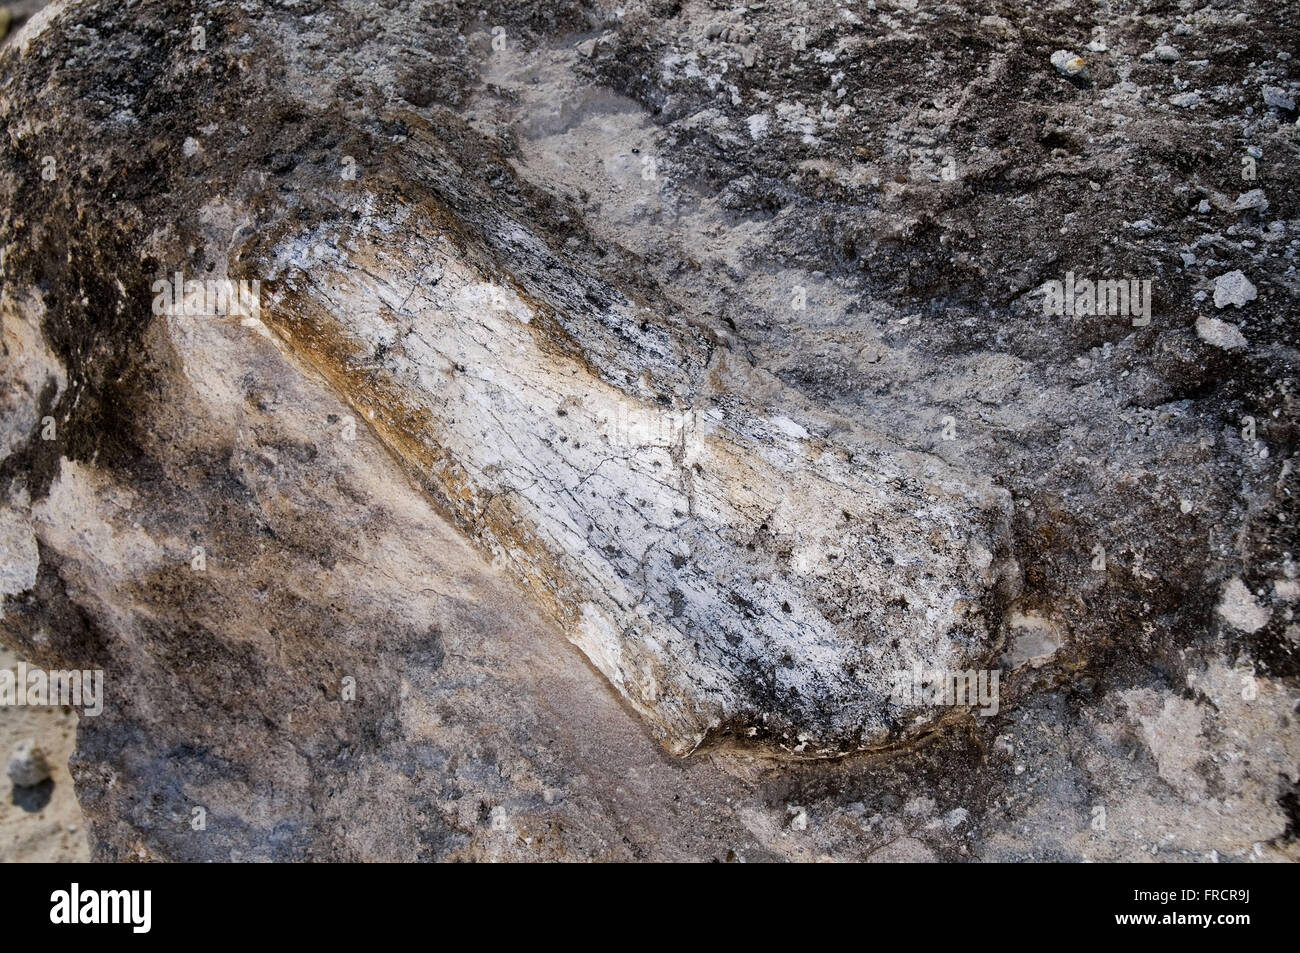 Petrified bone with approximately 70 million years of the Cretaceous period - Stock Image